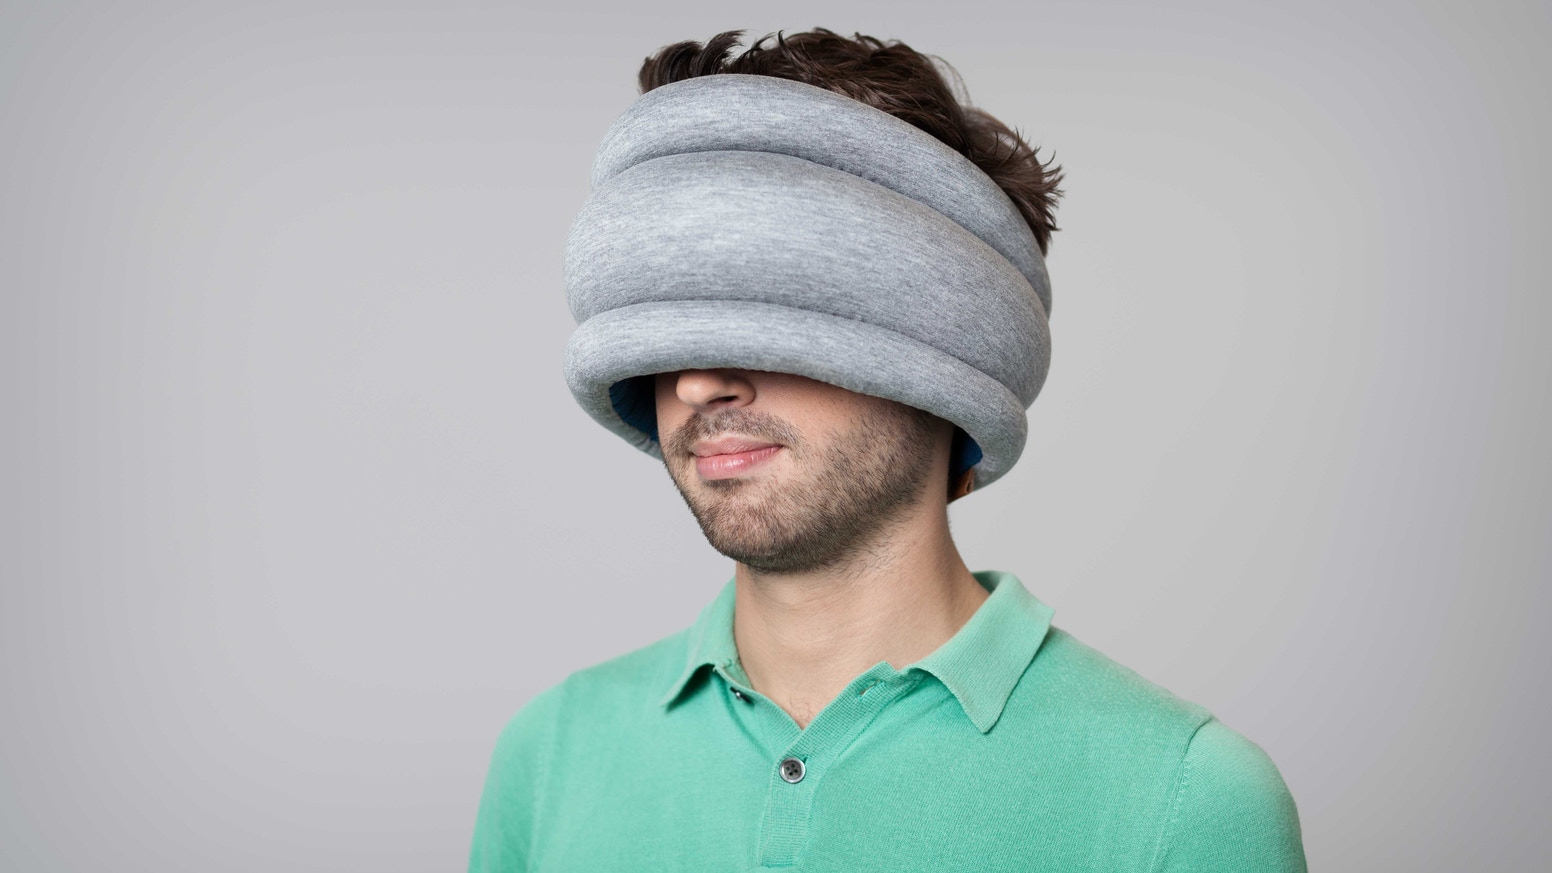 Ostrich Pillow Light – Portable Power Napping Pillow For People On The Go.